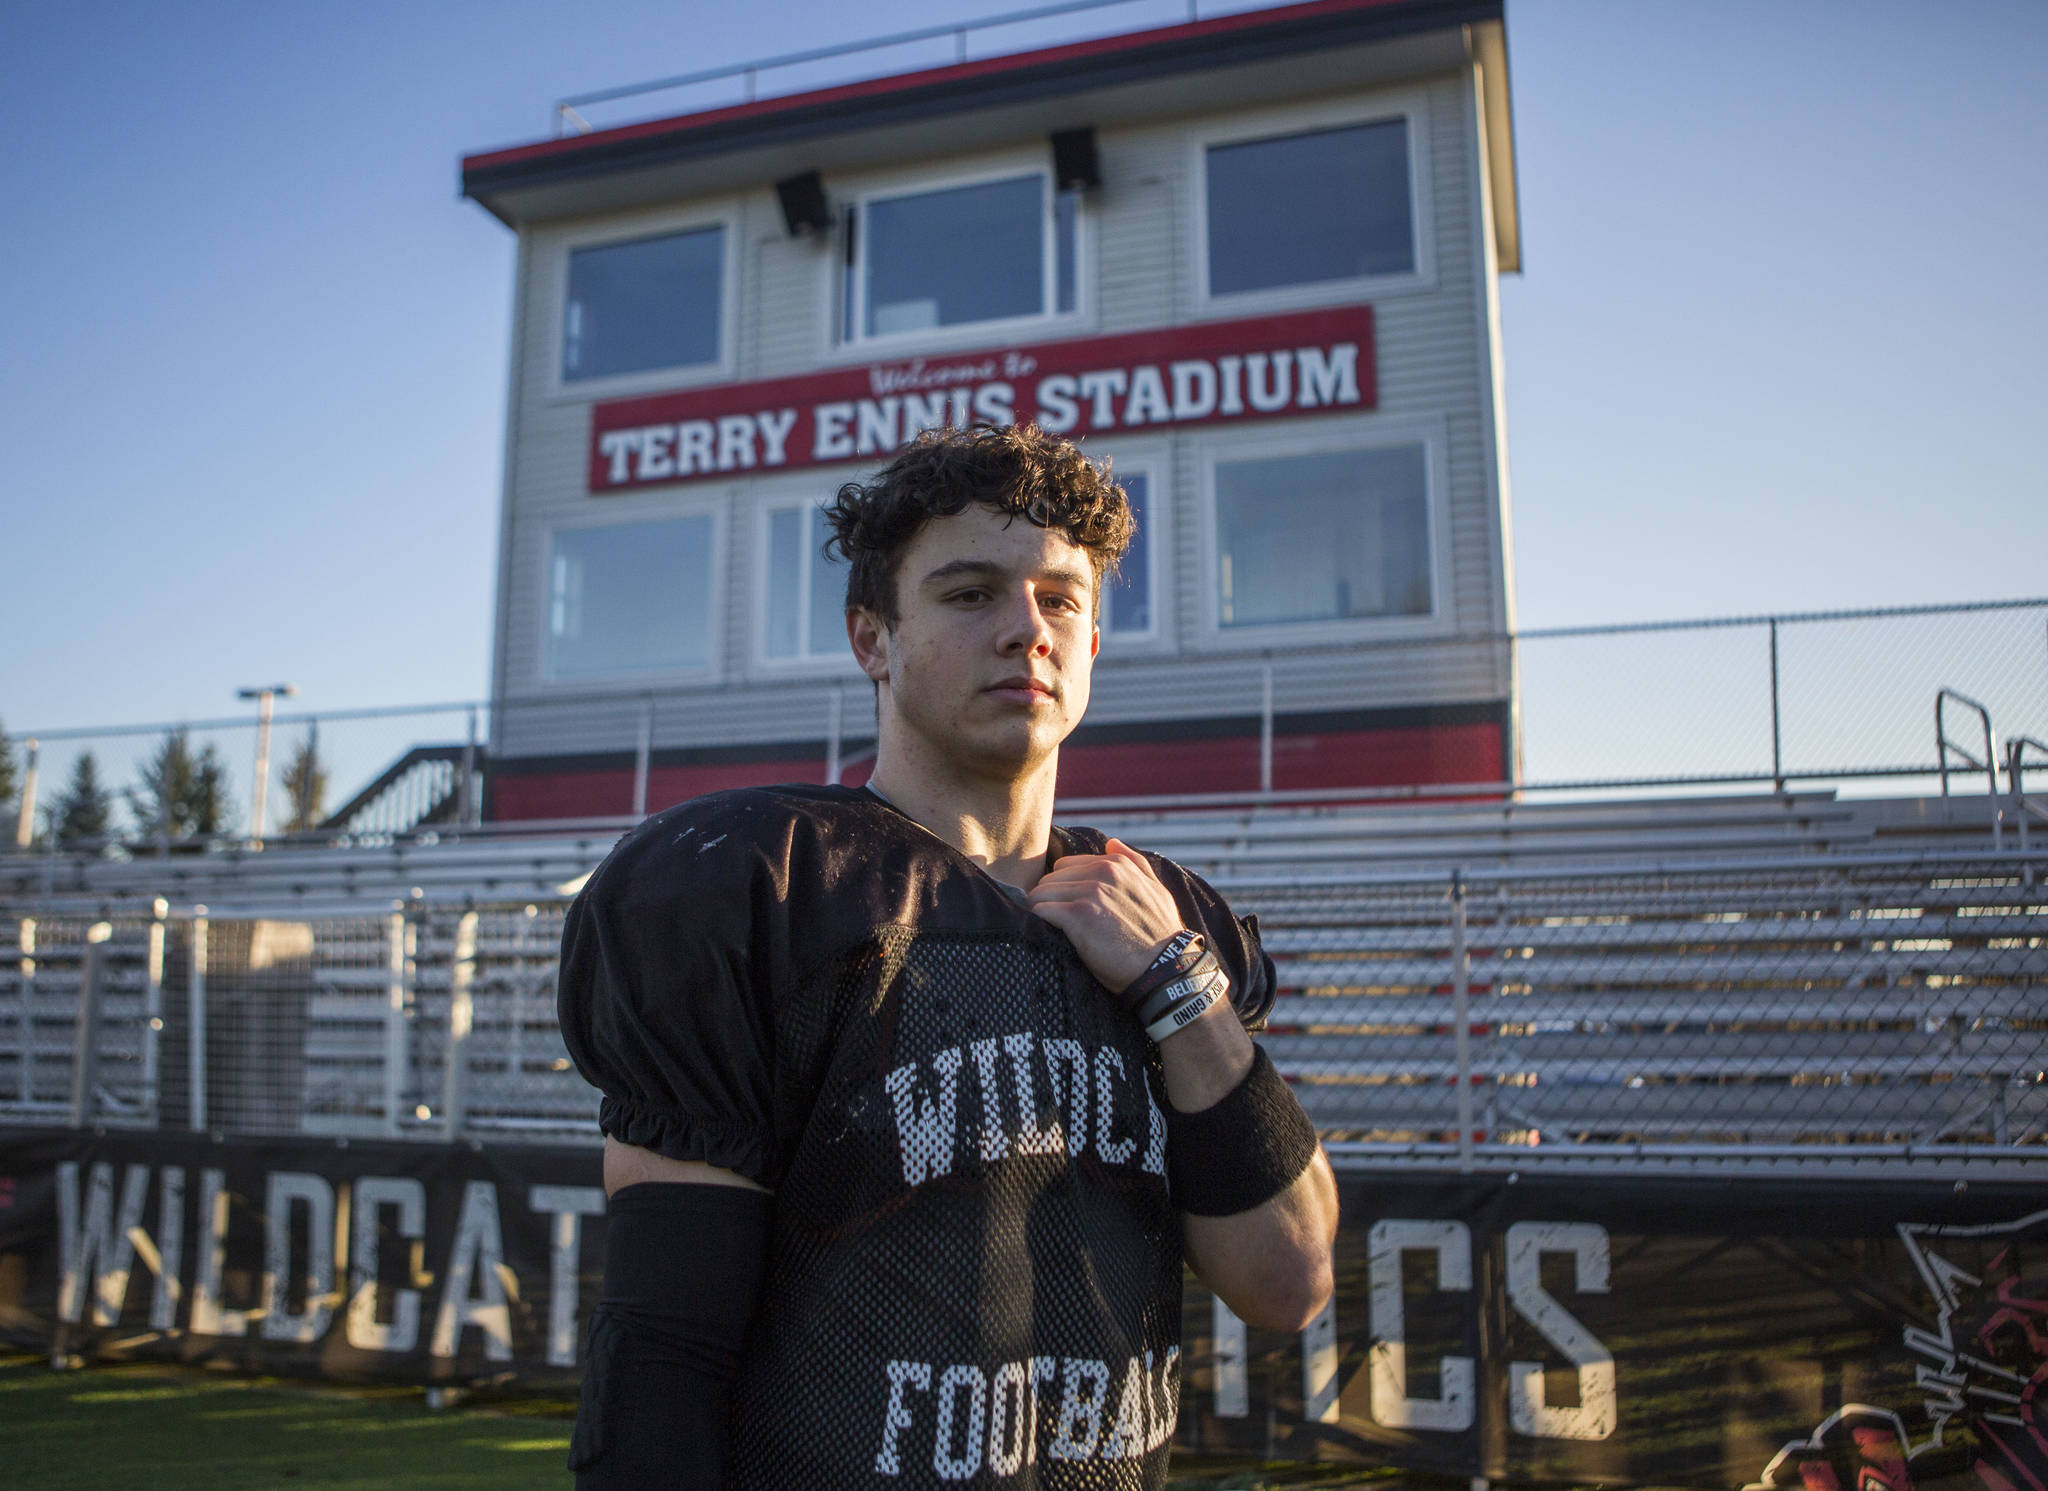 Archbishop Murphy's Joe Ennis, the grandson of legendary high school football coach Terry Ennis, poses at Terry Ennis Stadium, home of the Wildcats, on Thursday in Everett. (Olivia Vanni / The Herald)